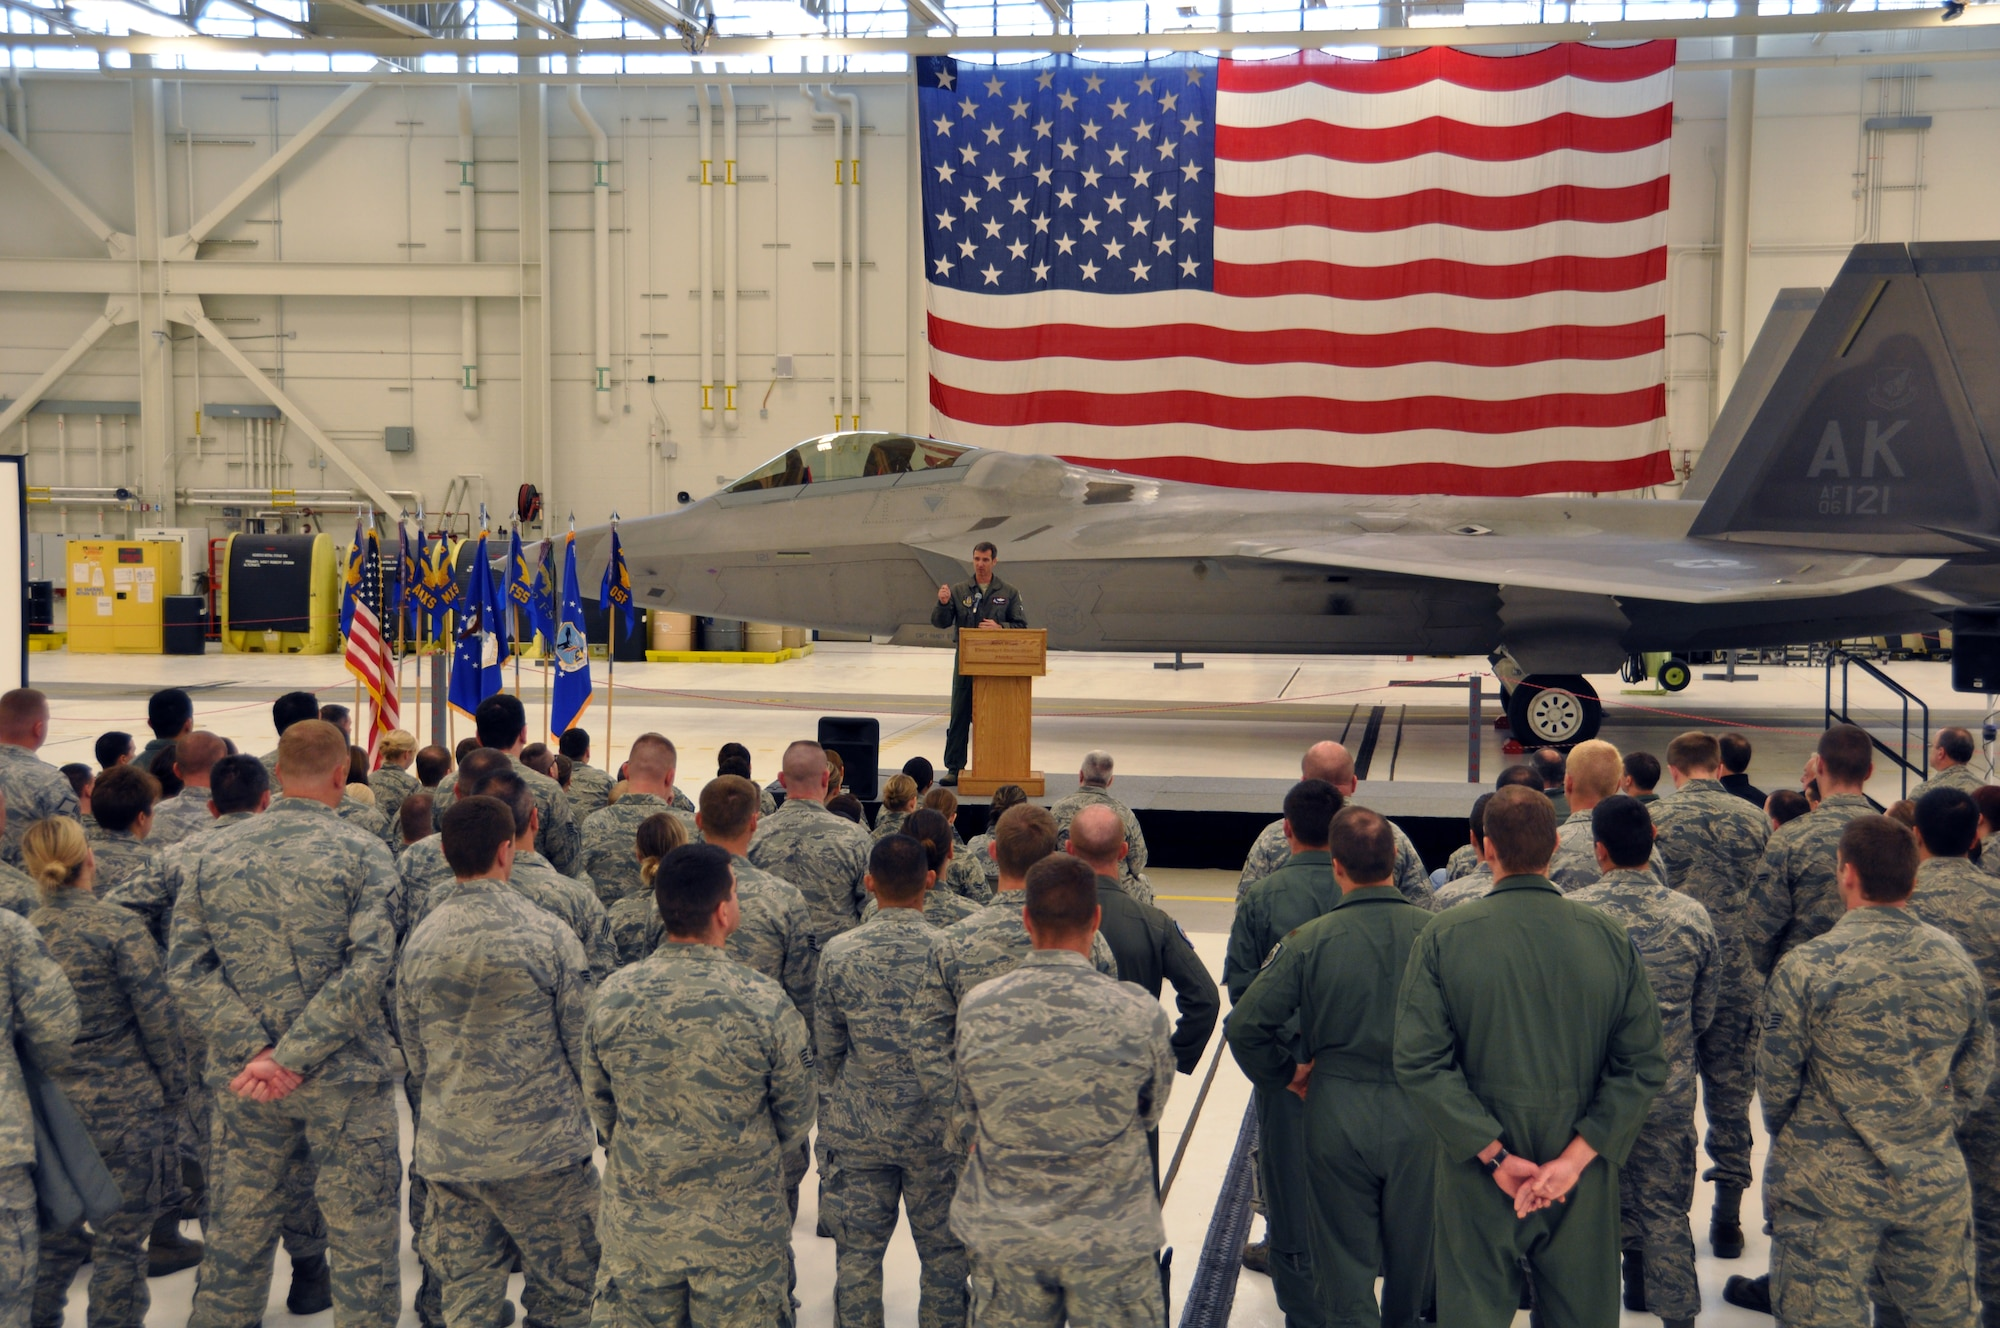 Col. Bryan Radliff, 477th Fighter Group commander, declares the 477th FG fully operational capable during a ceremony during the groups monthly Unit Training Assembly weekend Sept. 9. The 477th FG traces its unit back to the 477th Bombardment Group, a Tuskegee Airmen unit that never reached FOC.  The 477th FG was reactivated at Joint Base Elmendorf Richardson in 2007. (U.S. Air Force Photo by Tech. Sgt. Dana Rosso)